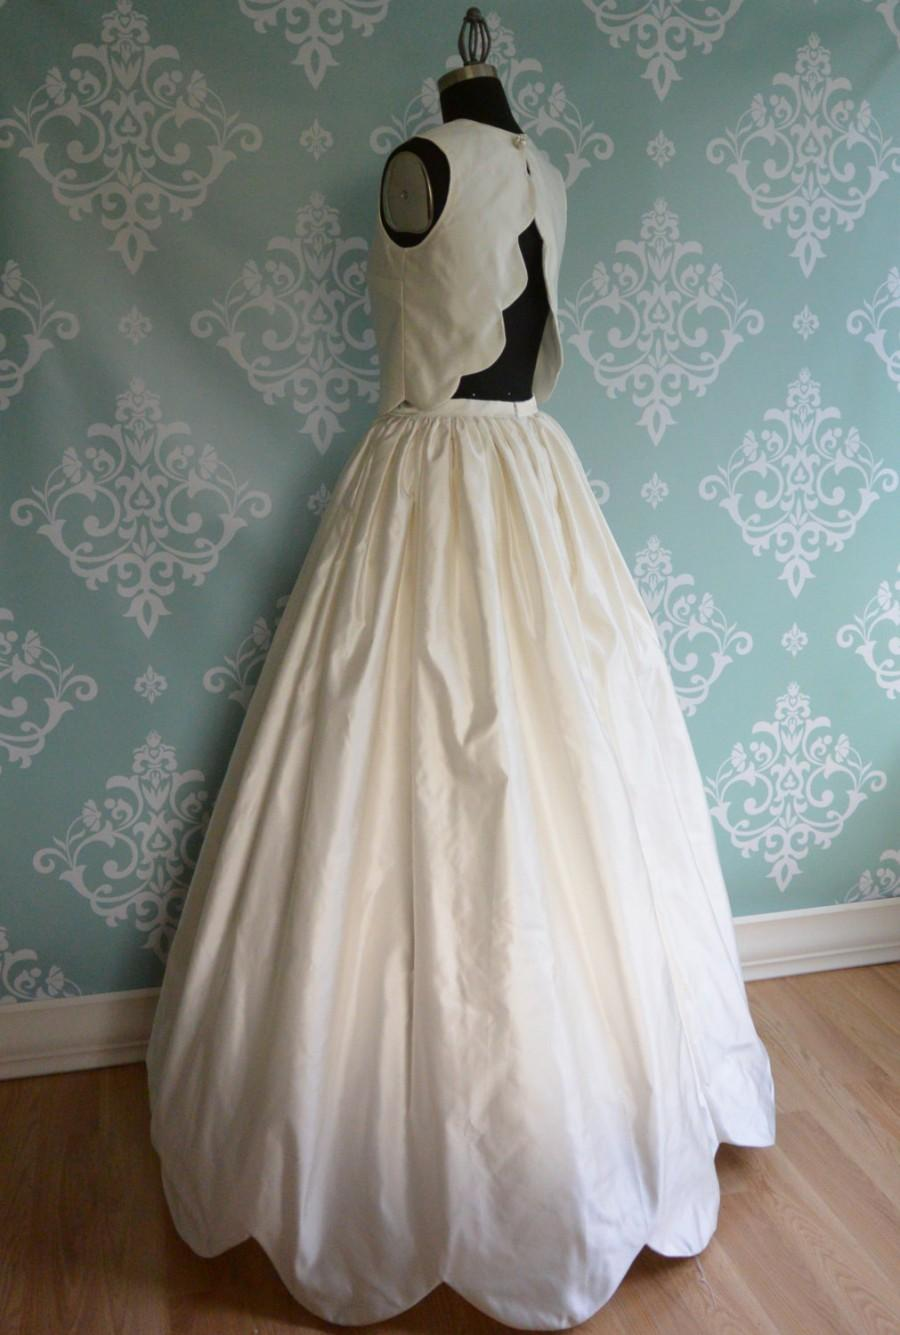 Boda - Crop Top Wedding Dress Two Piece, FORGET ME NOT, Silk Duchess Scallops